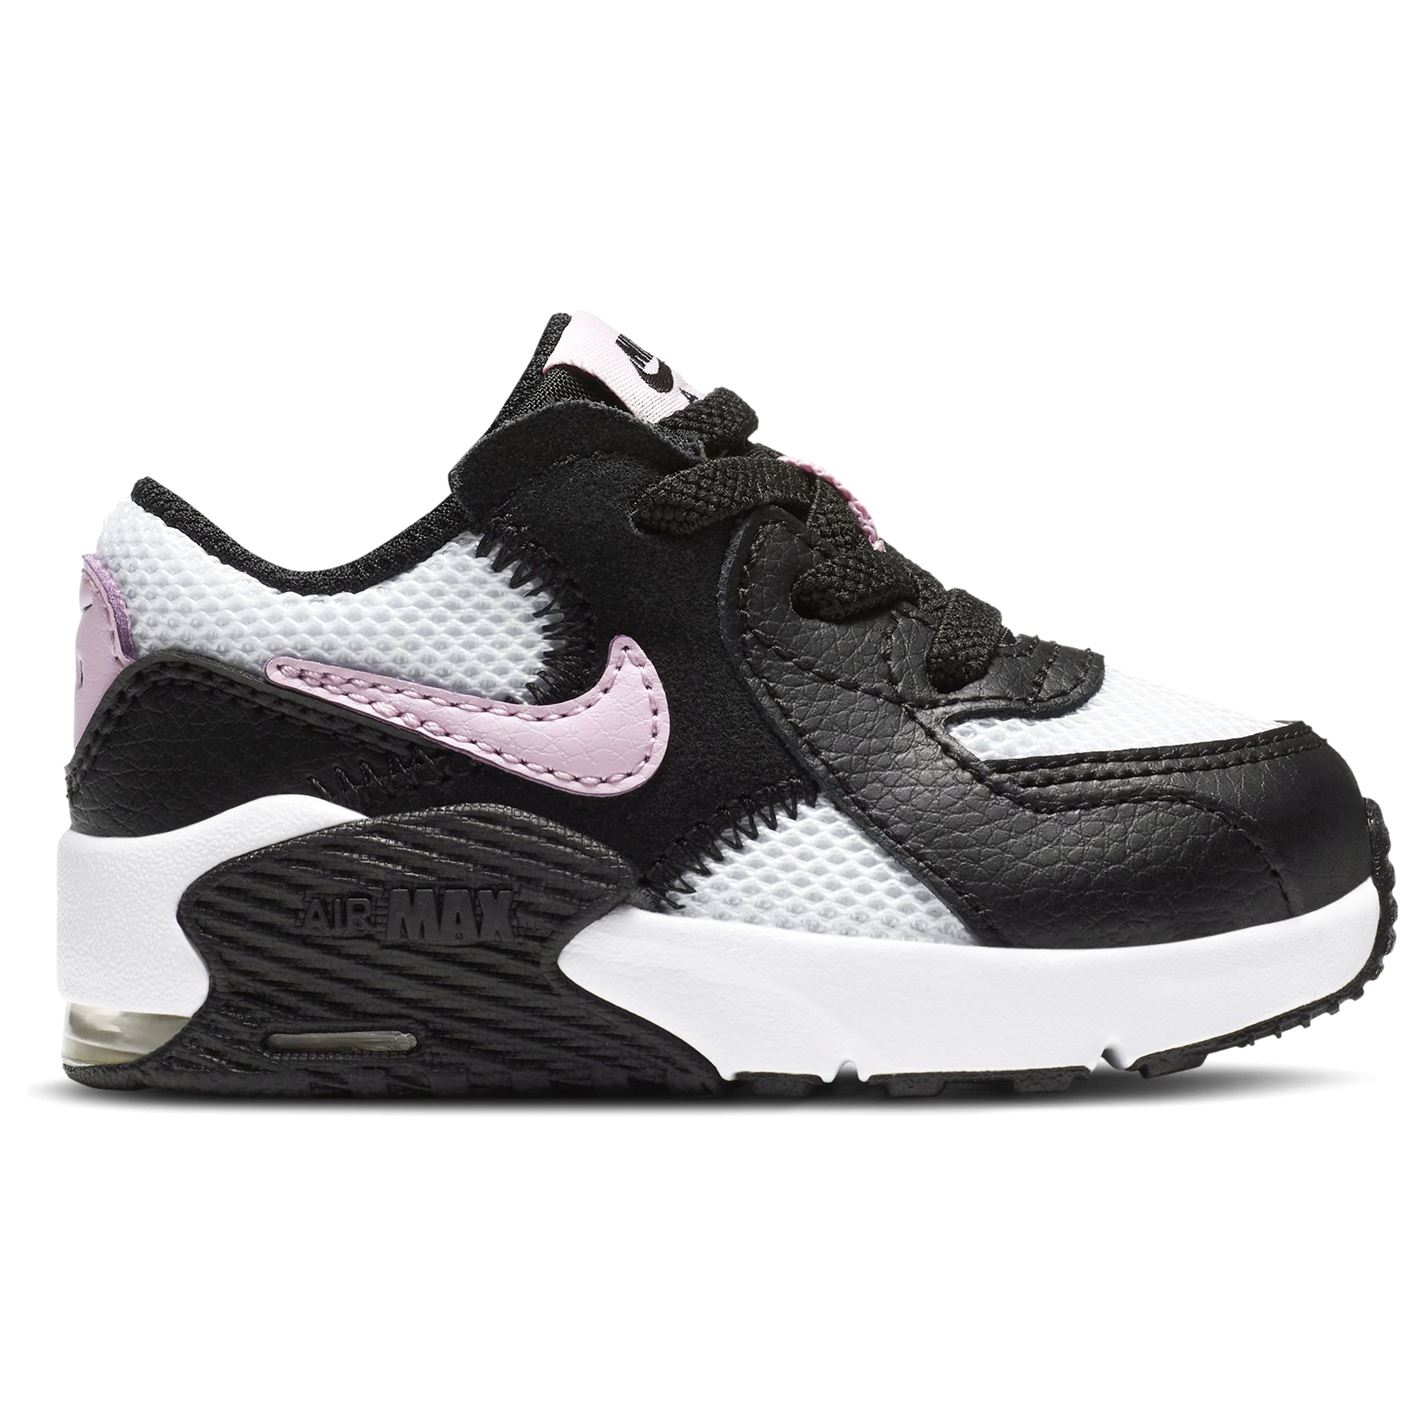 Nike Air Max Excee Baby/Toddler Shoe Black/Pink/Wht